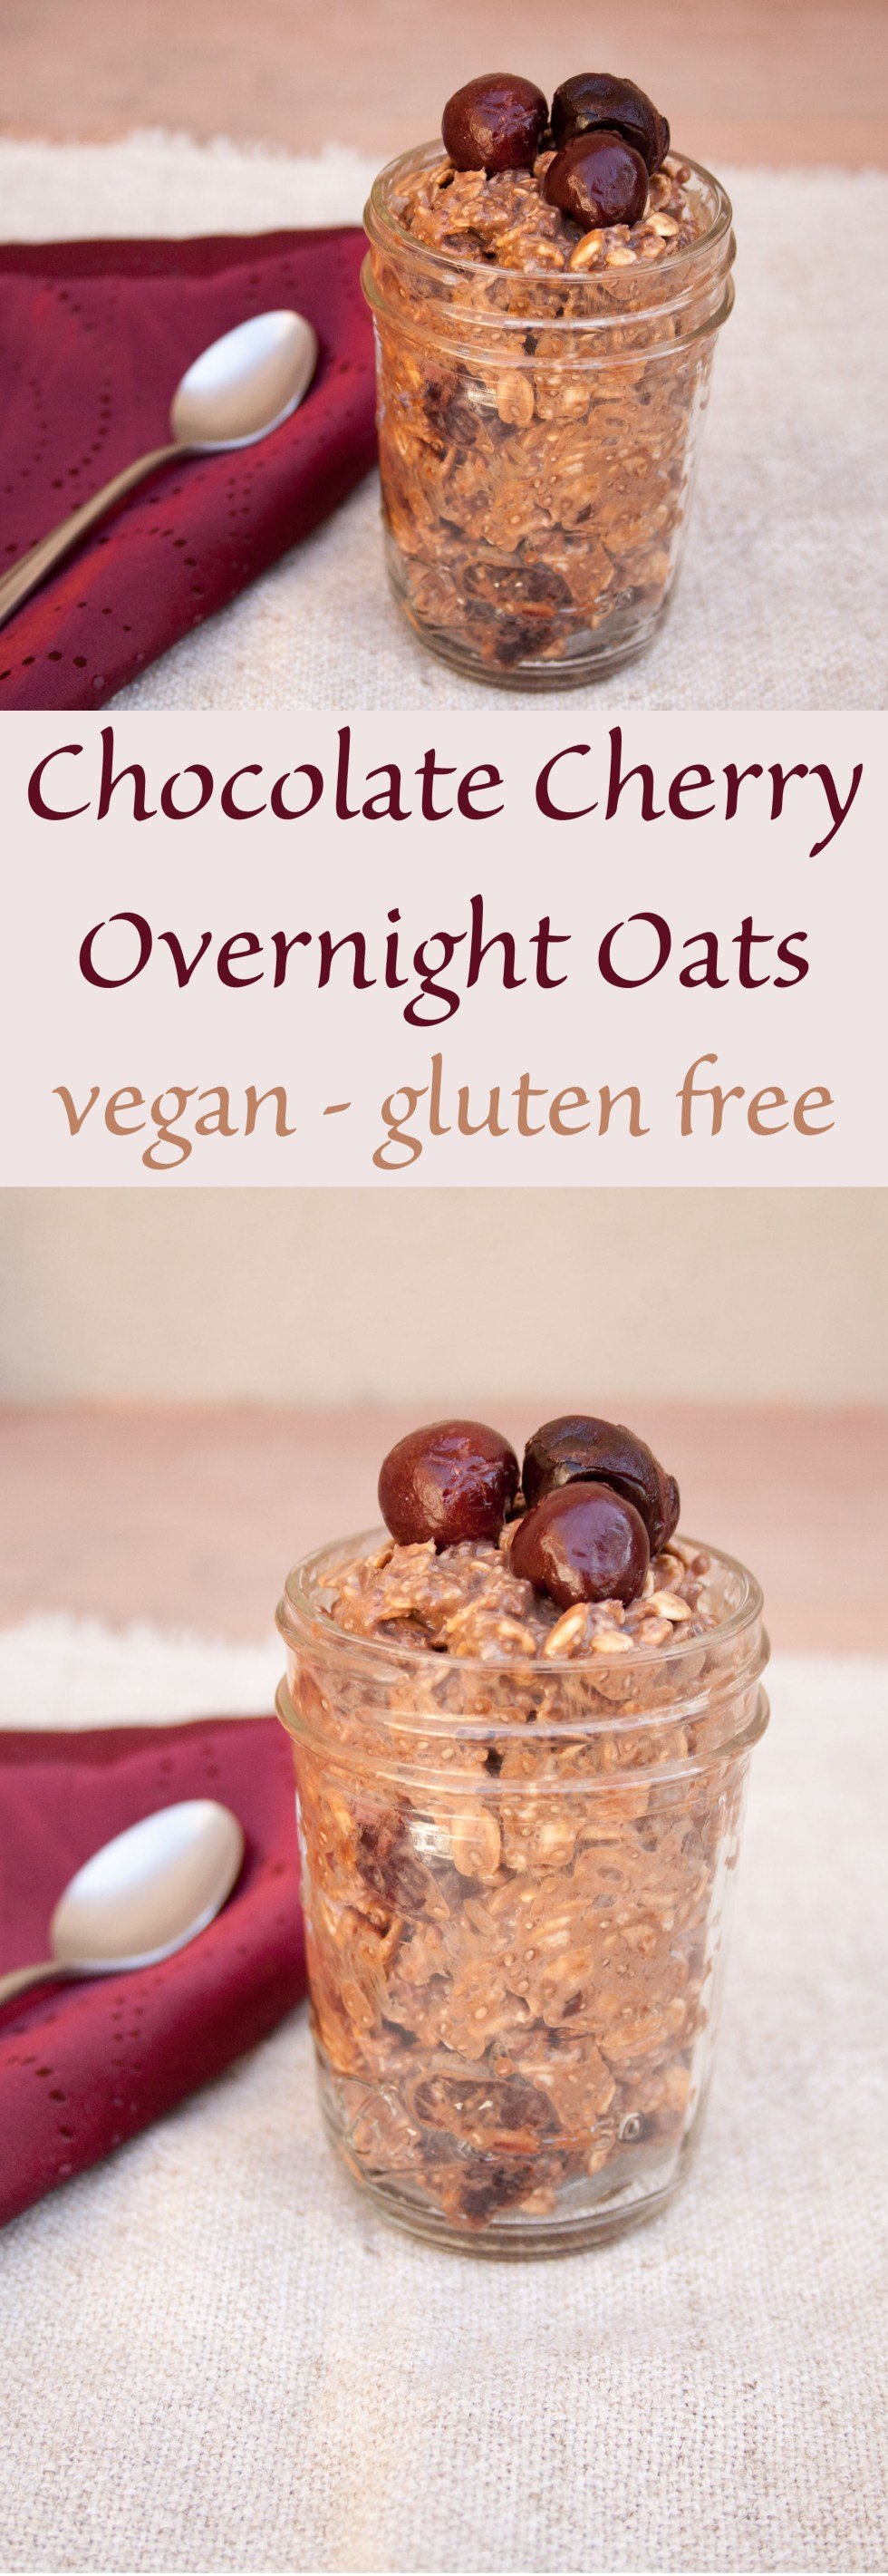 Chocolate Cherry Overnight Oats - Cherry and chocolate for breakfast? Yes, please! These vegan overnight oats are perfect for traveling.